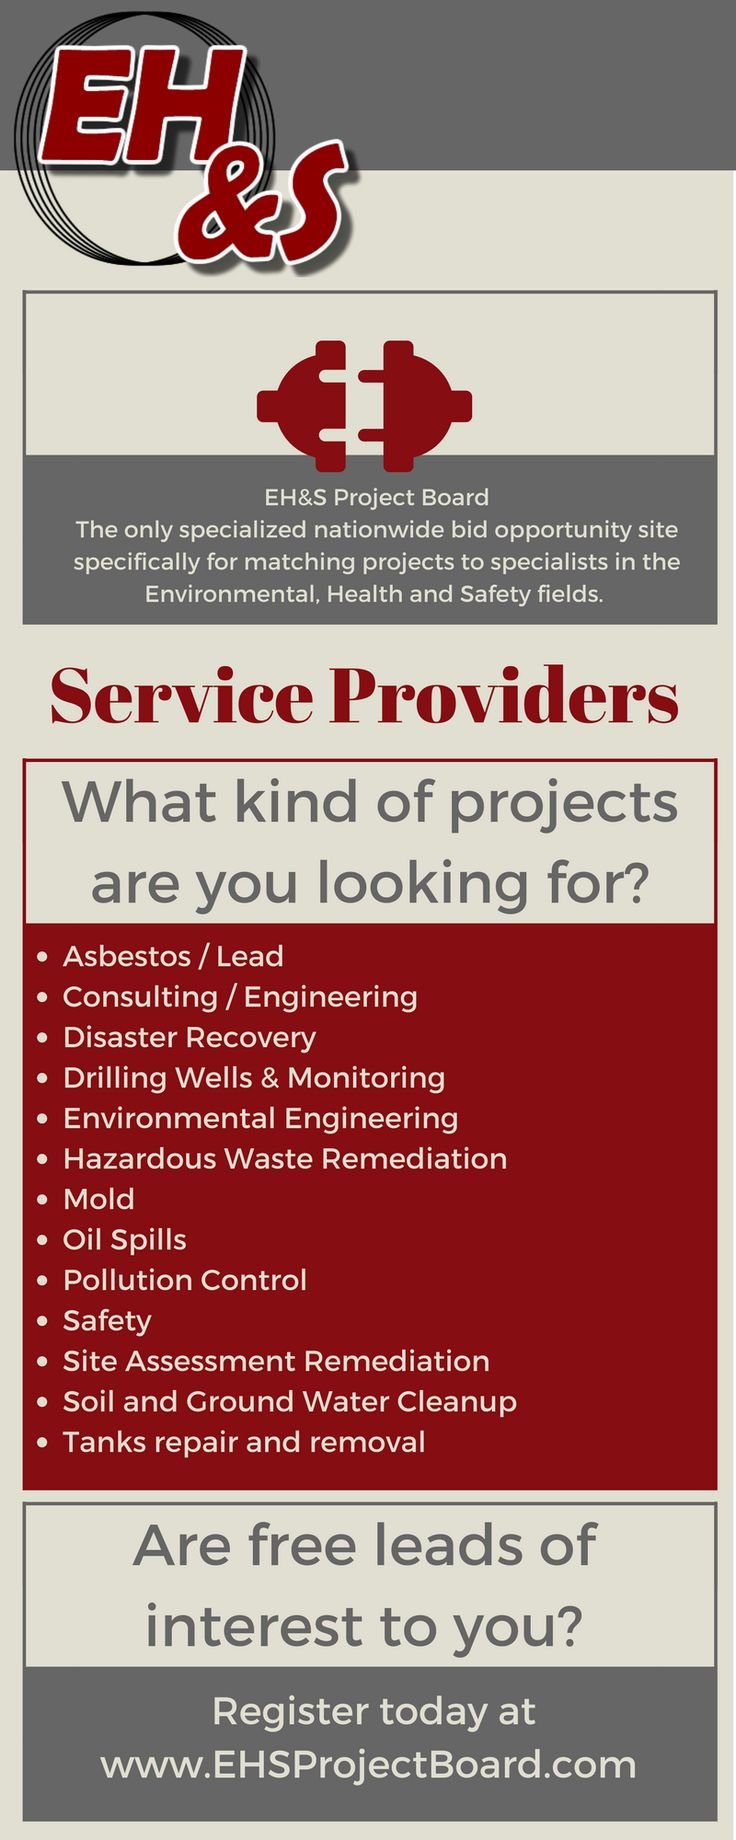 50 best certified industrial hygienist images on pinterest industrial hygiene asbestos lead disaster recovery drilling well monitoring environmental 1betcityfo Choice Image